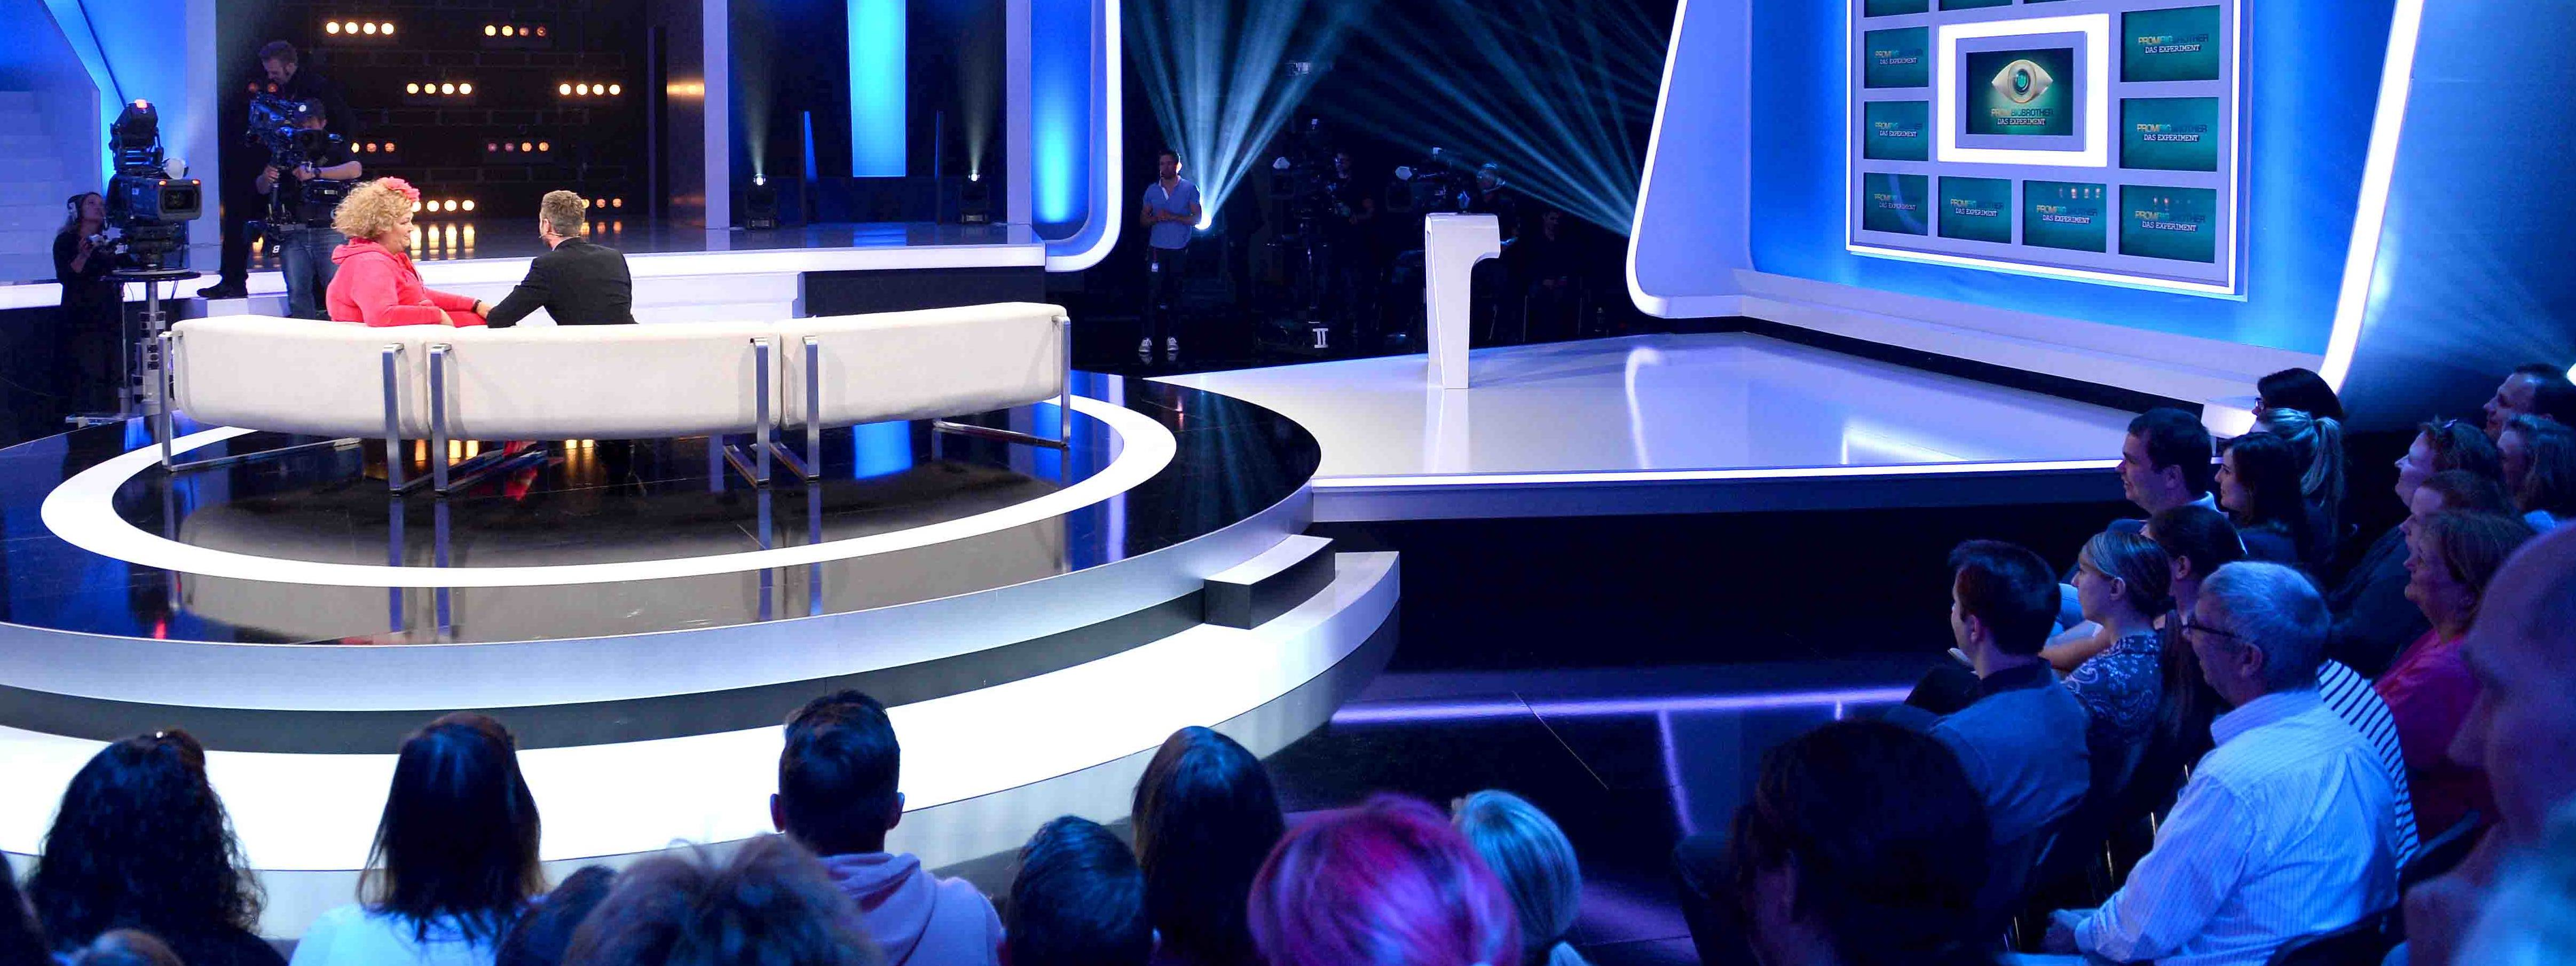 Promi Big Brother Liveshow Besuch